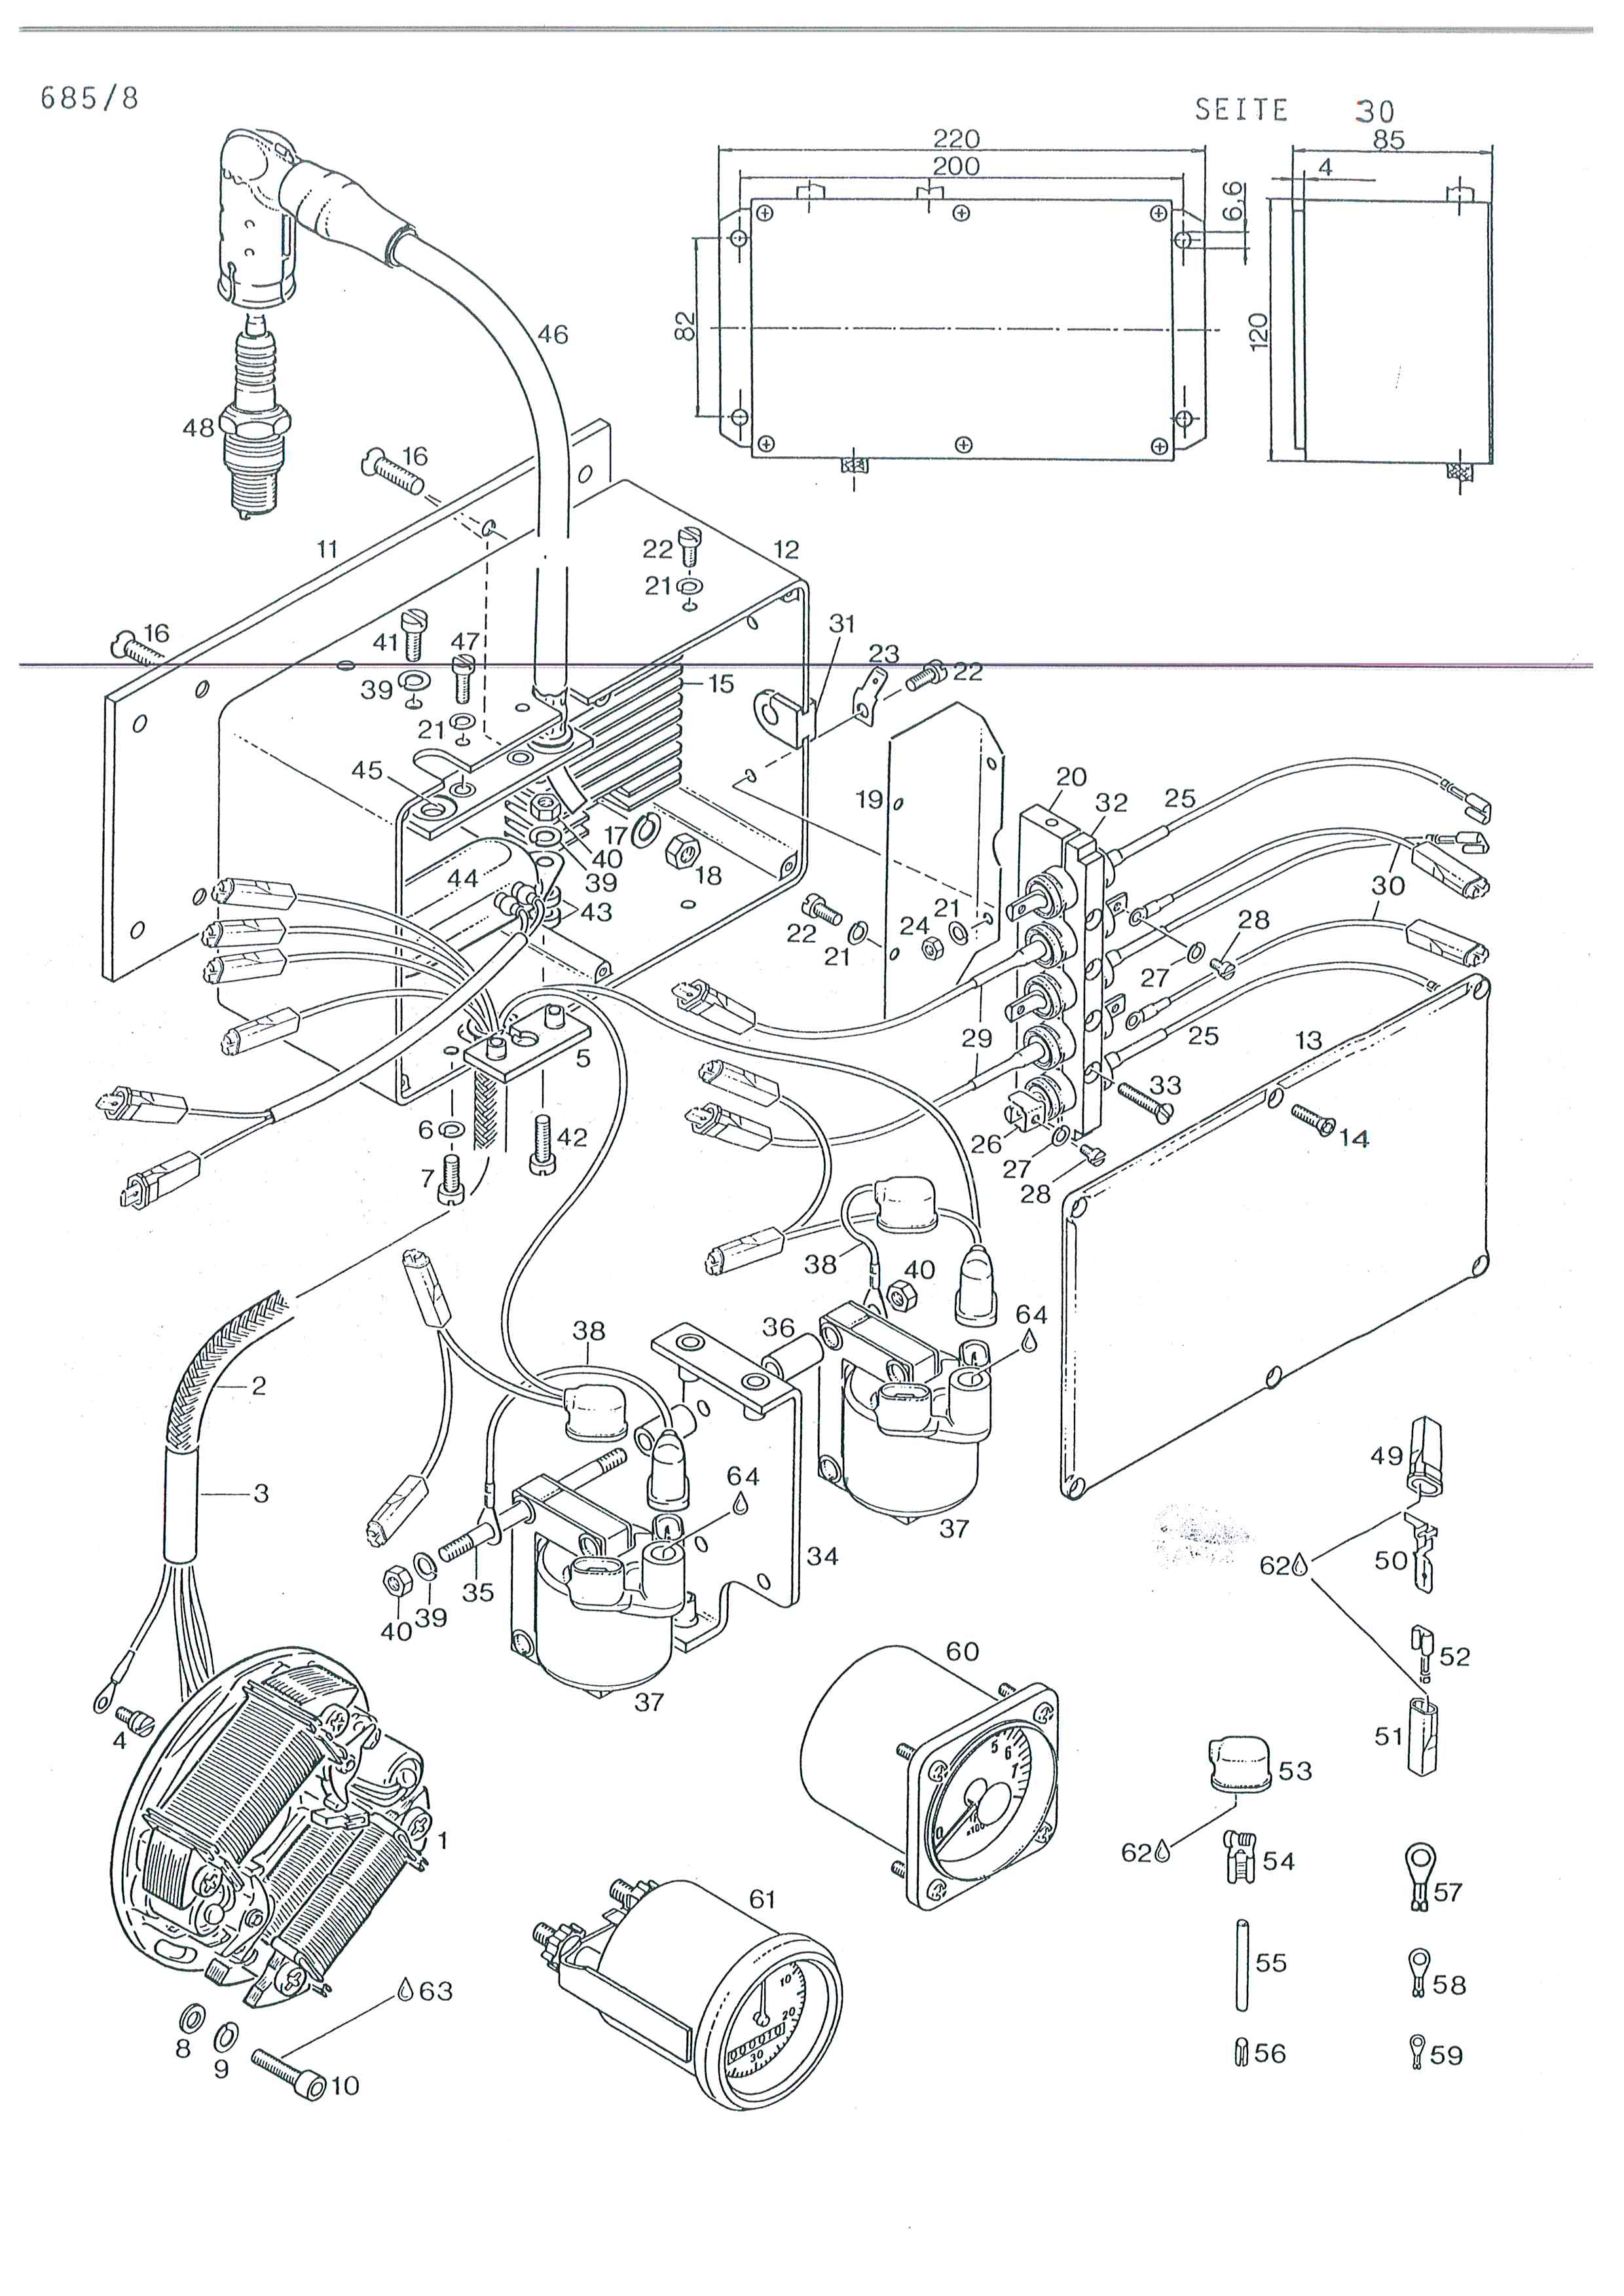 Rotax 503 Point Engine Flywheel Magnet 10000112 000eur Zen Diagram